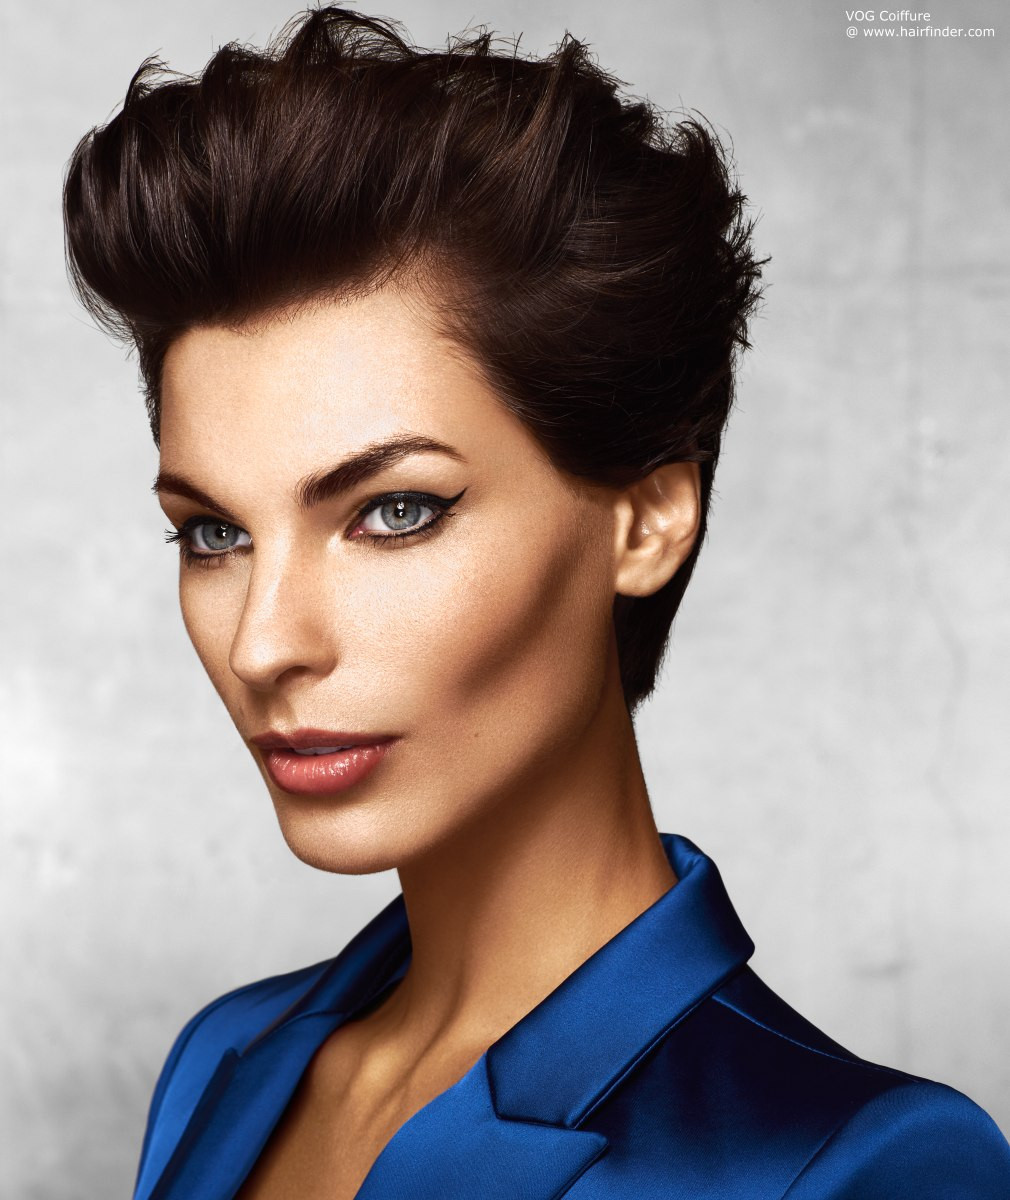 Best ideas about Low Haircuts For Females . Save or Pin Low Cut Hairstyles For Women Now.